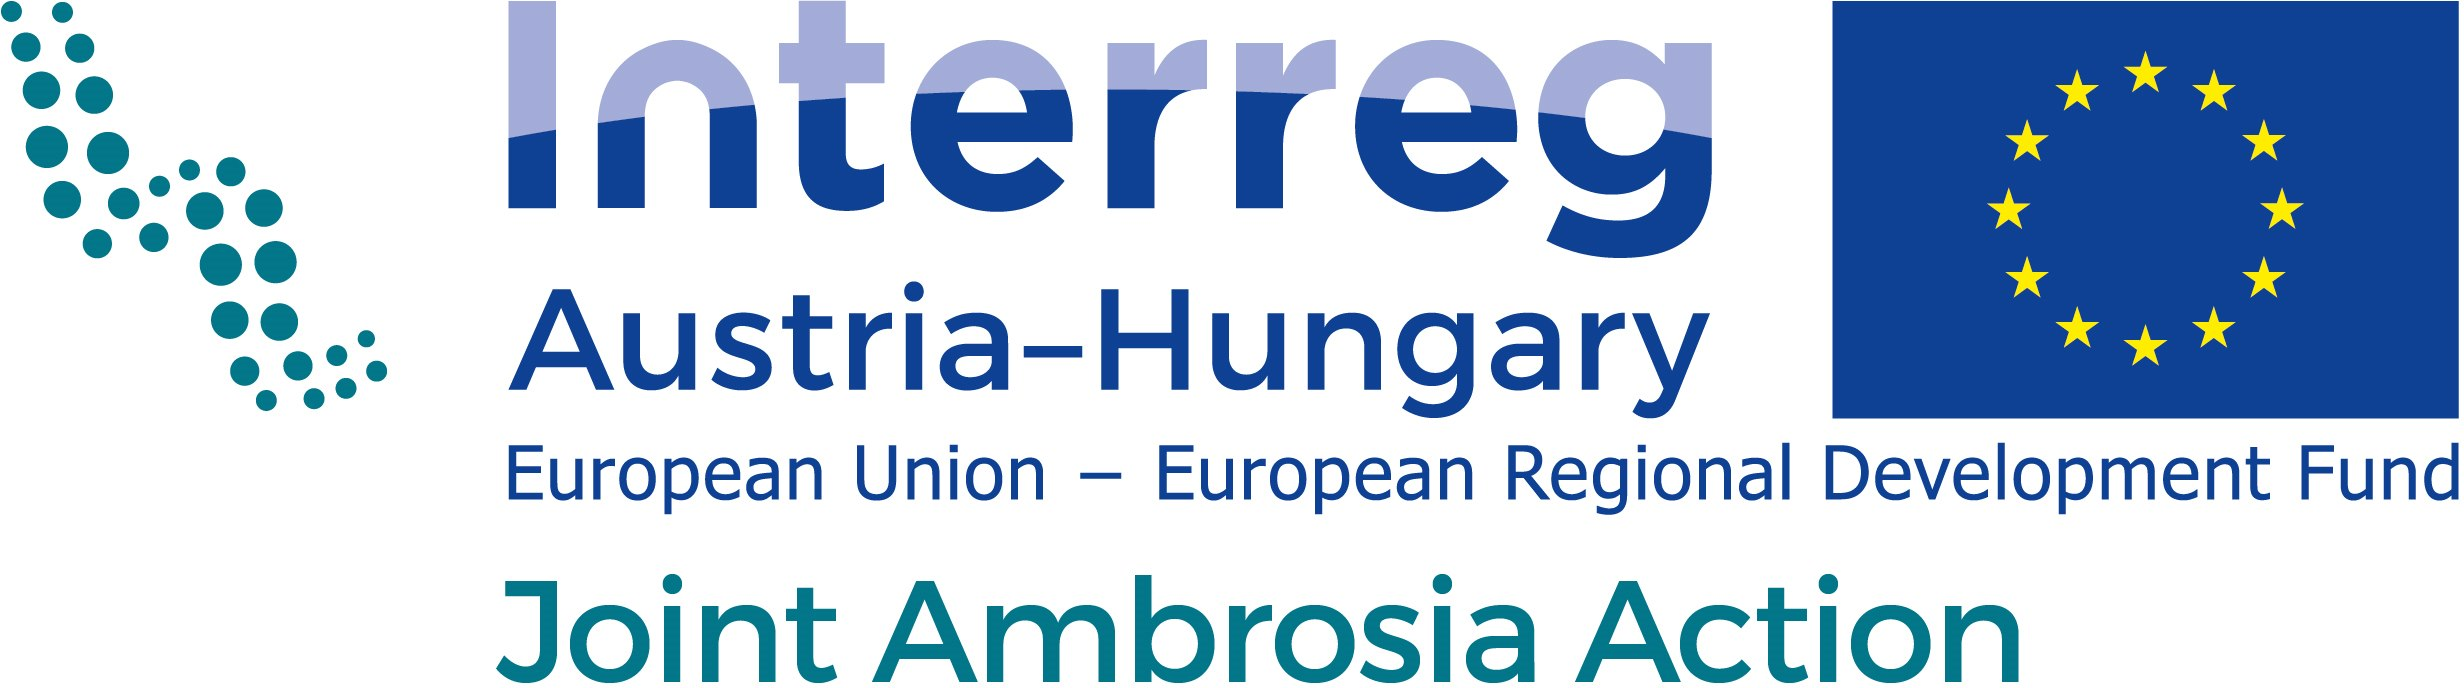 Austria-Hungary Joint Ambrosia Action Logo